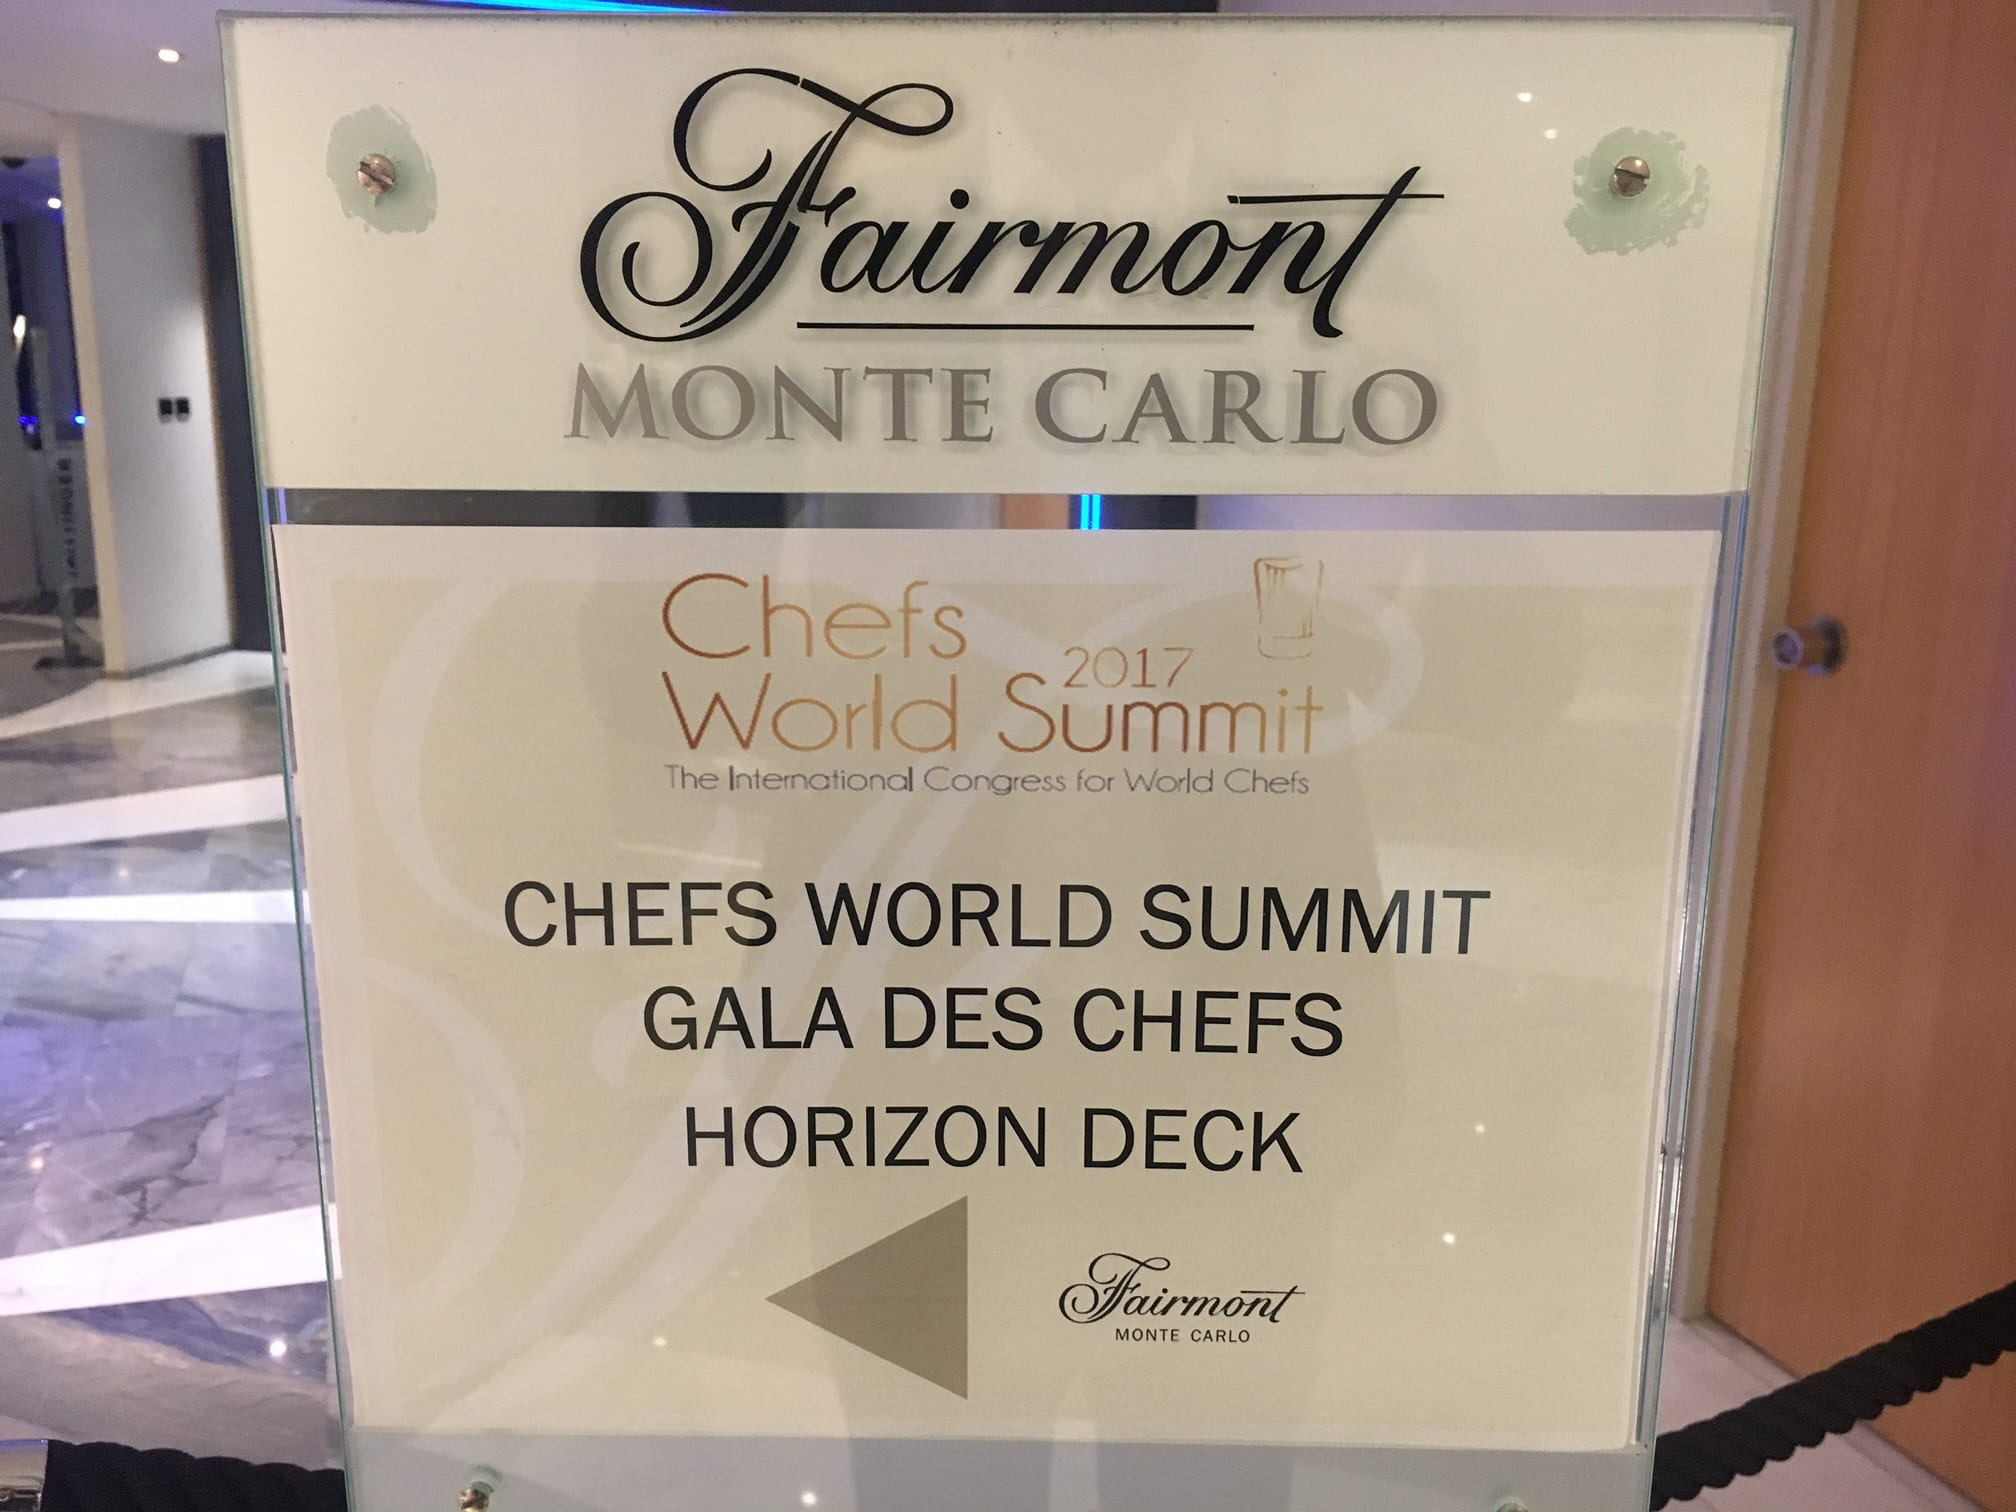 IMG 6891 Rochini meets Chefs World Summit 2017 in Monaco